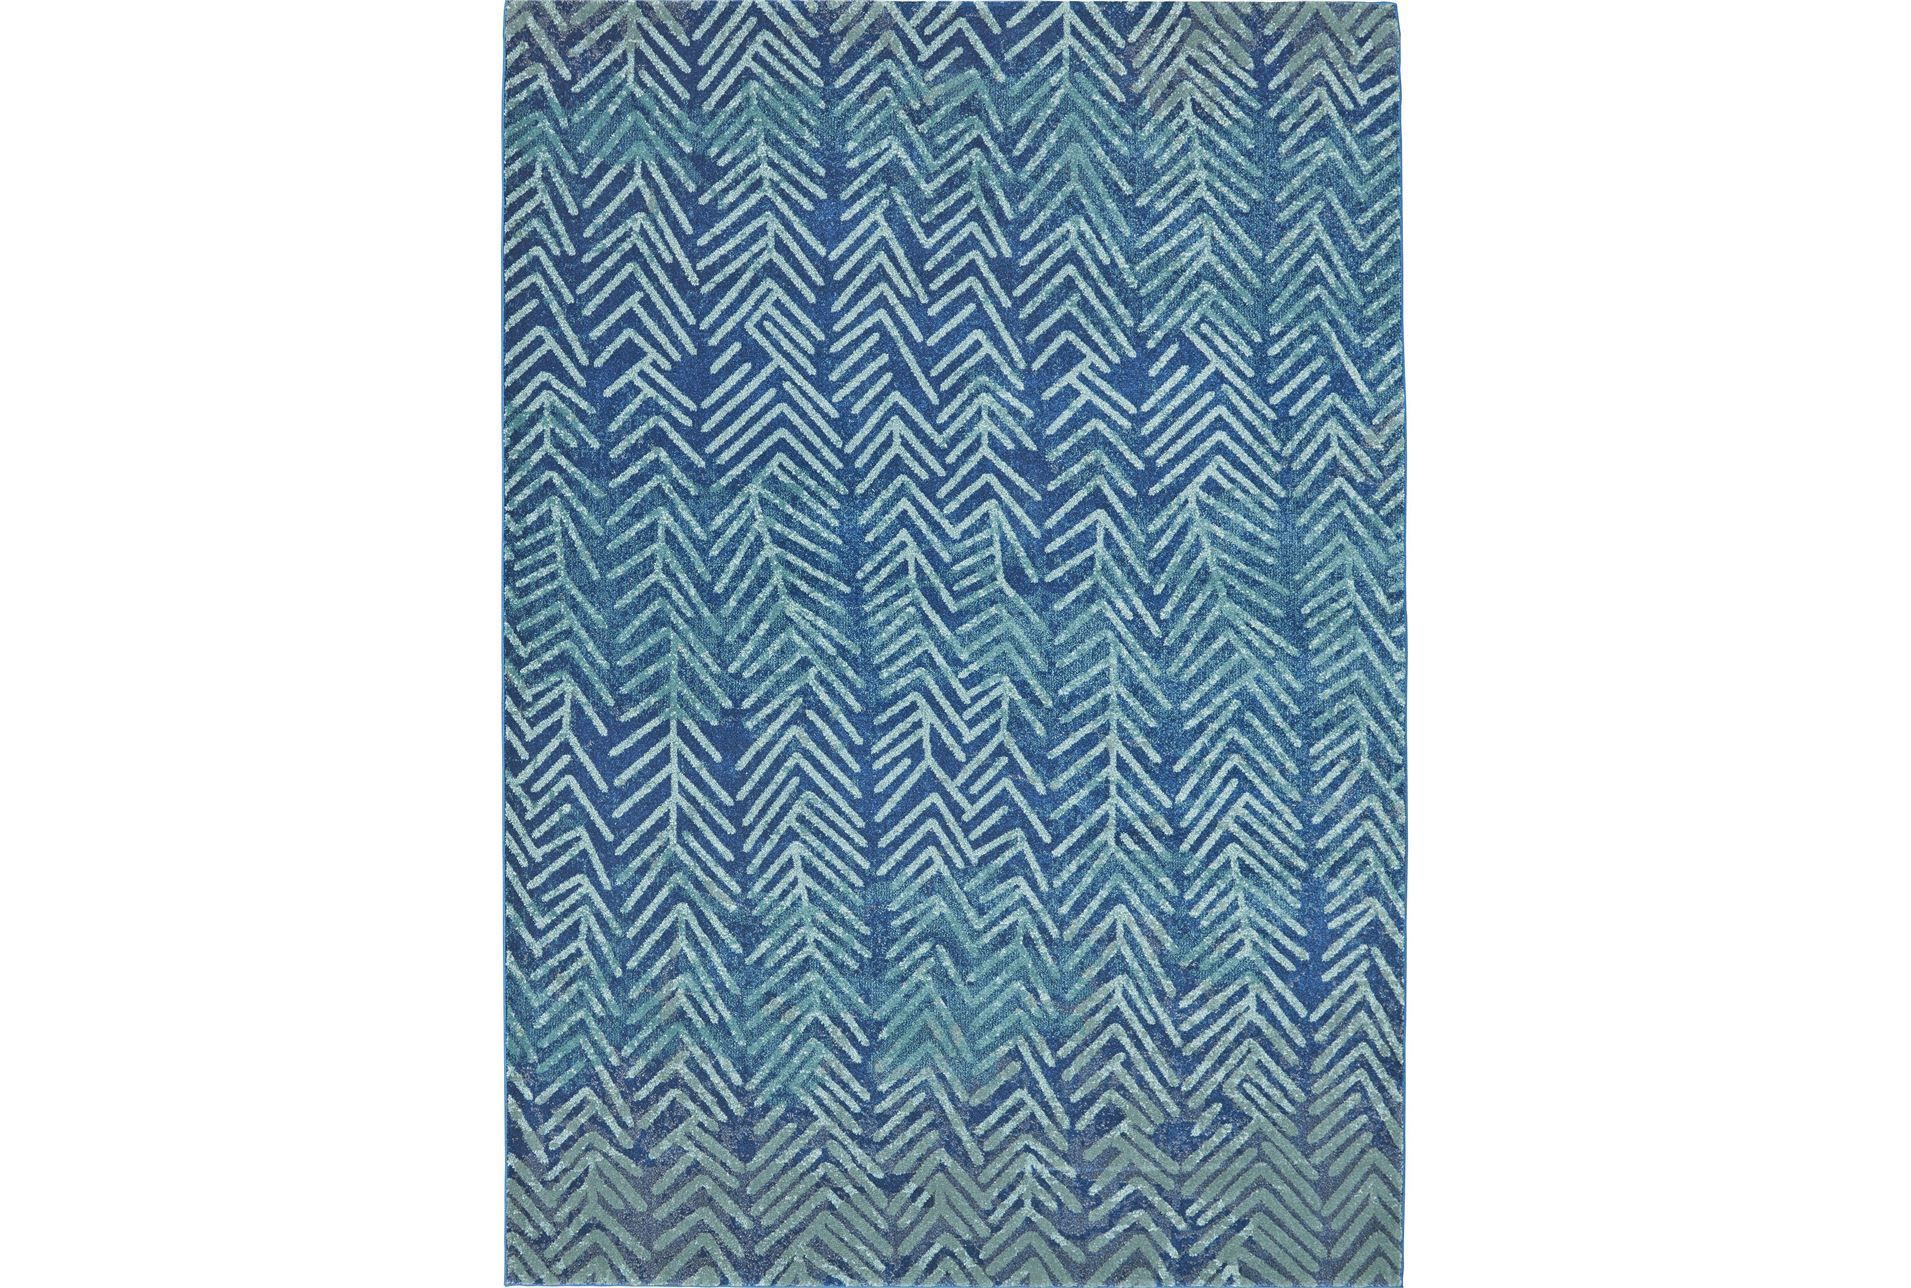 96x132 ruglochlan pacific area rugs rugs quality area